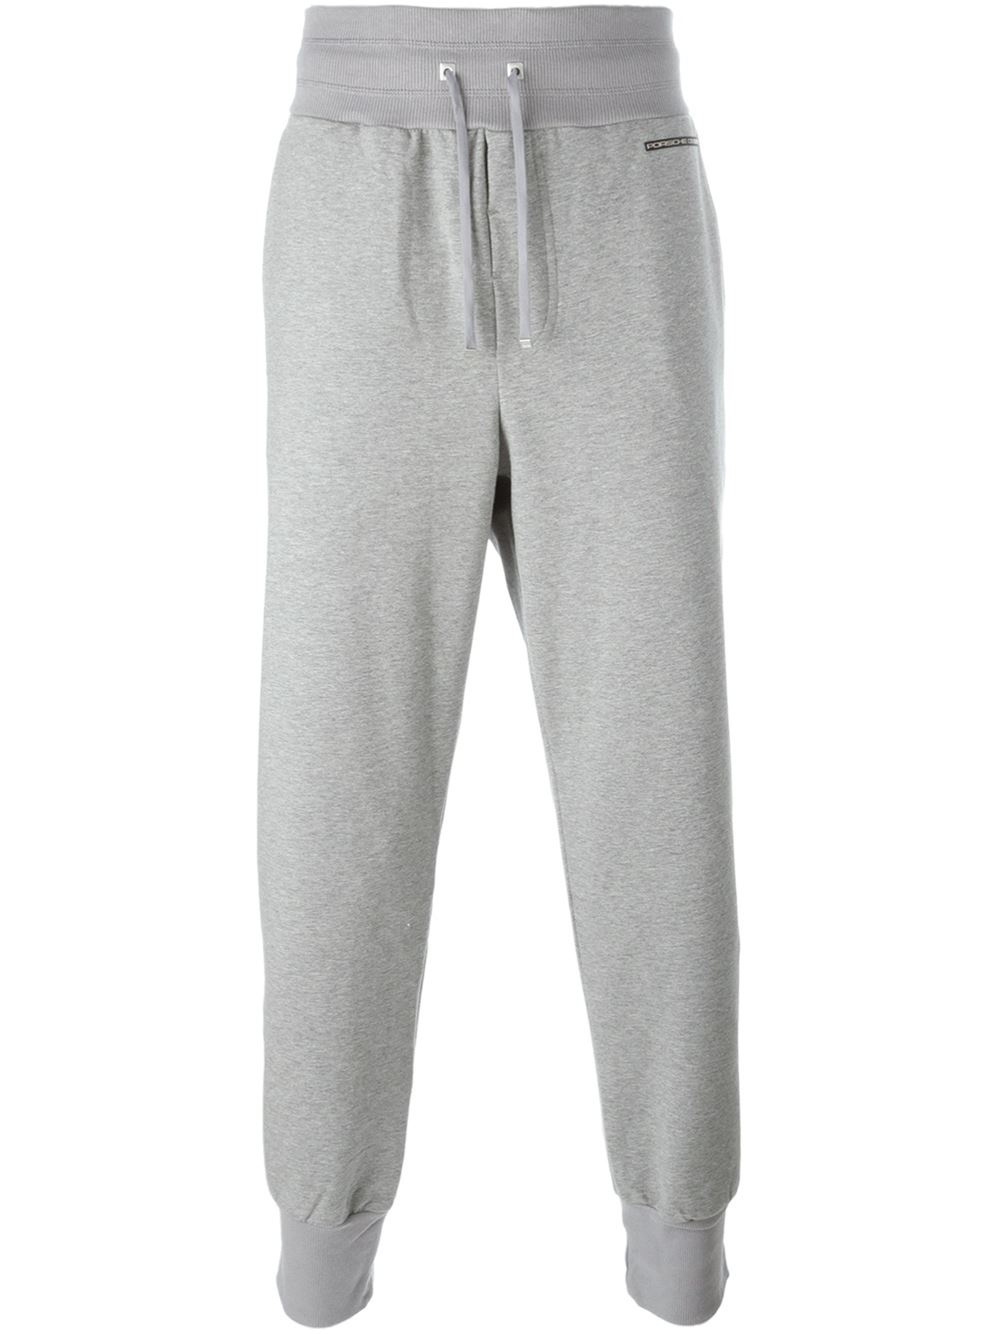 Lyst Adidas Originals Porsche Design Sports Sweatpants